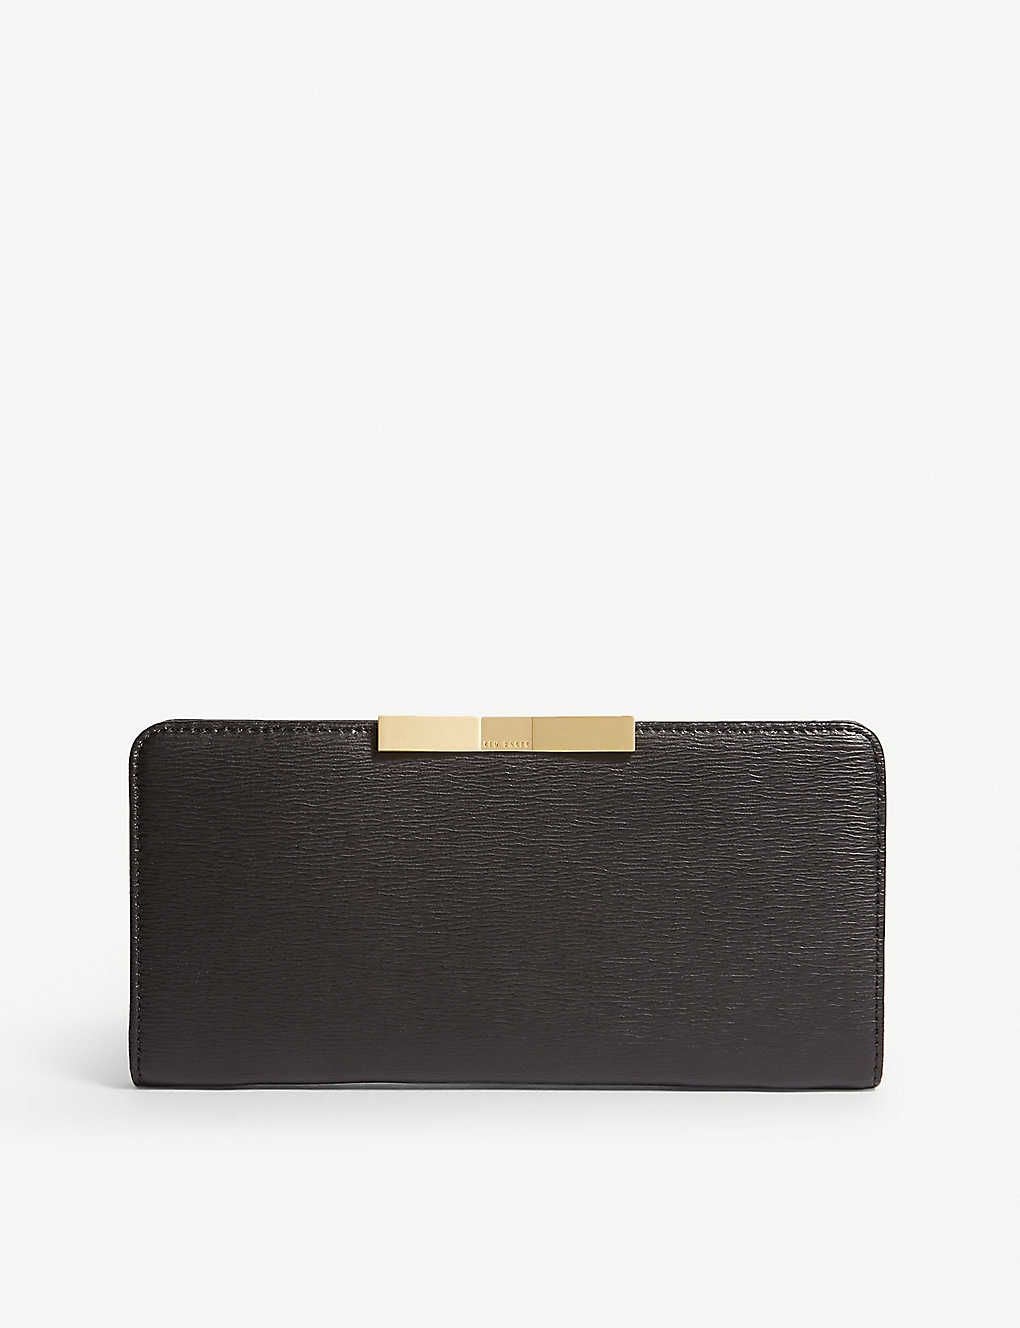 dbf53a24c50 TED BAKER - Flow leather matinee purse | Selfridges.com